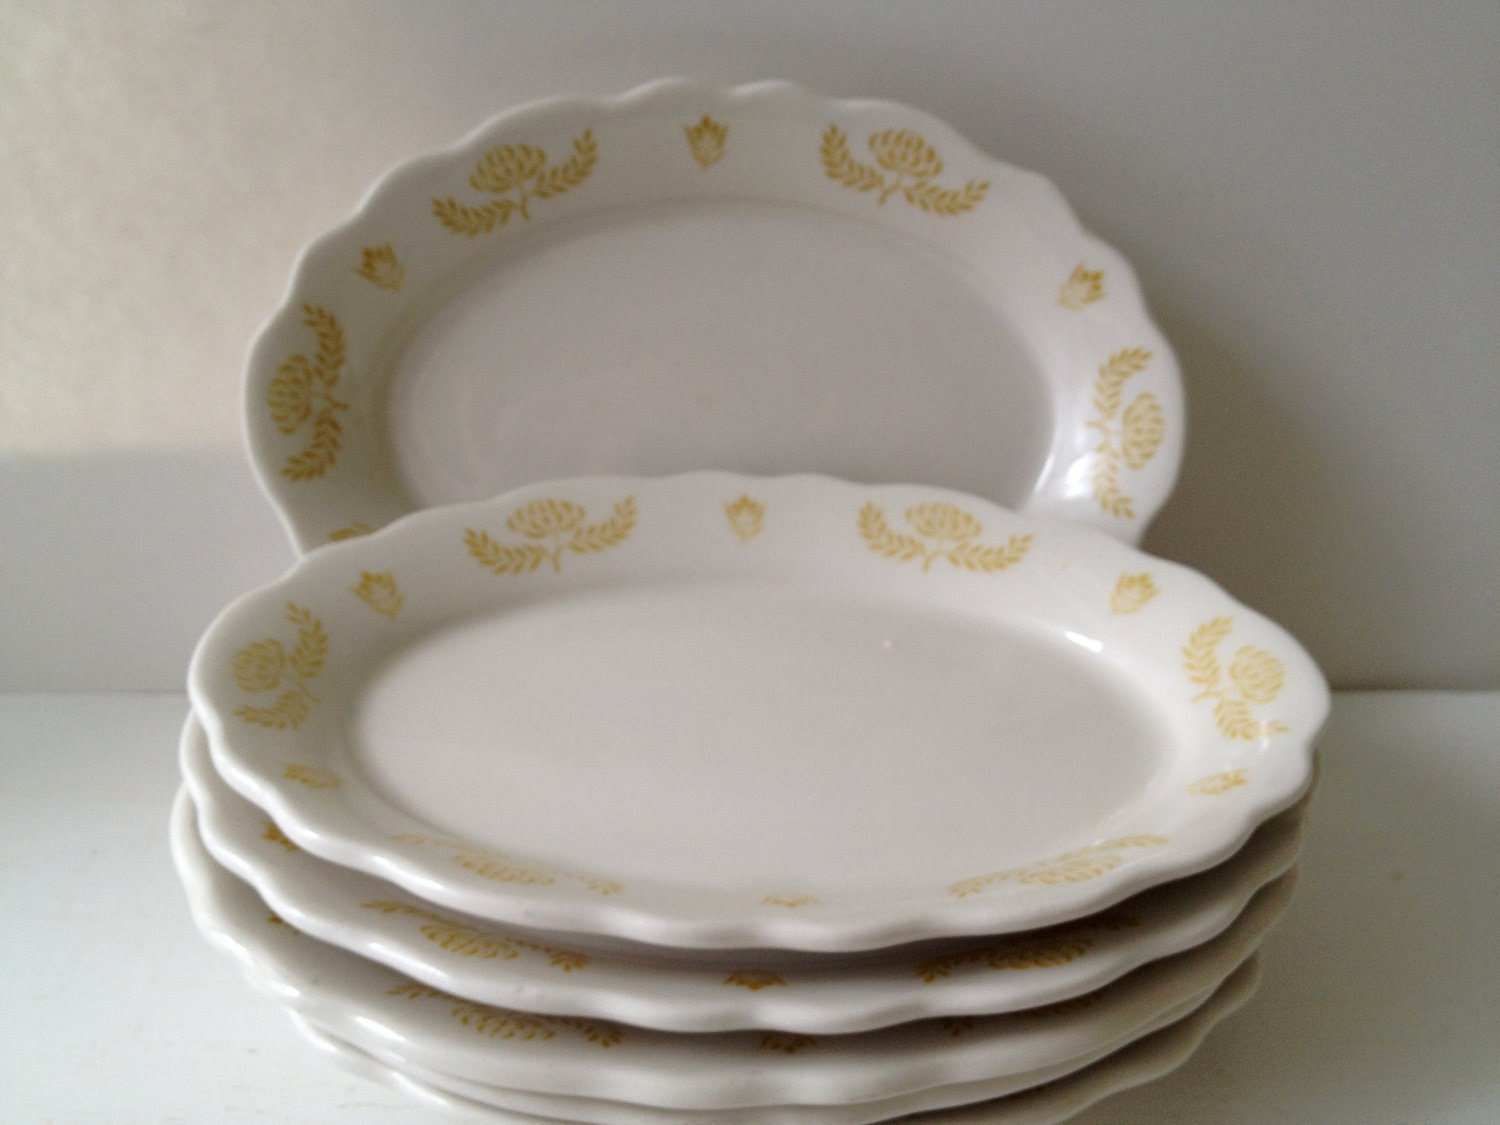 SALE - Set of 6 Vintage Scalloped Plates - Mustard Yellow Design